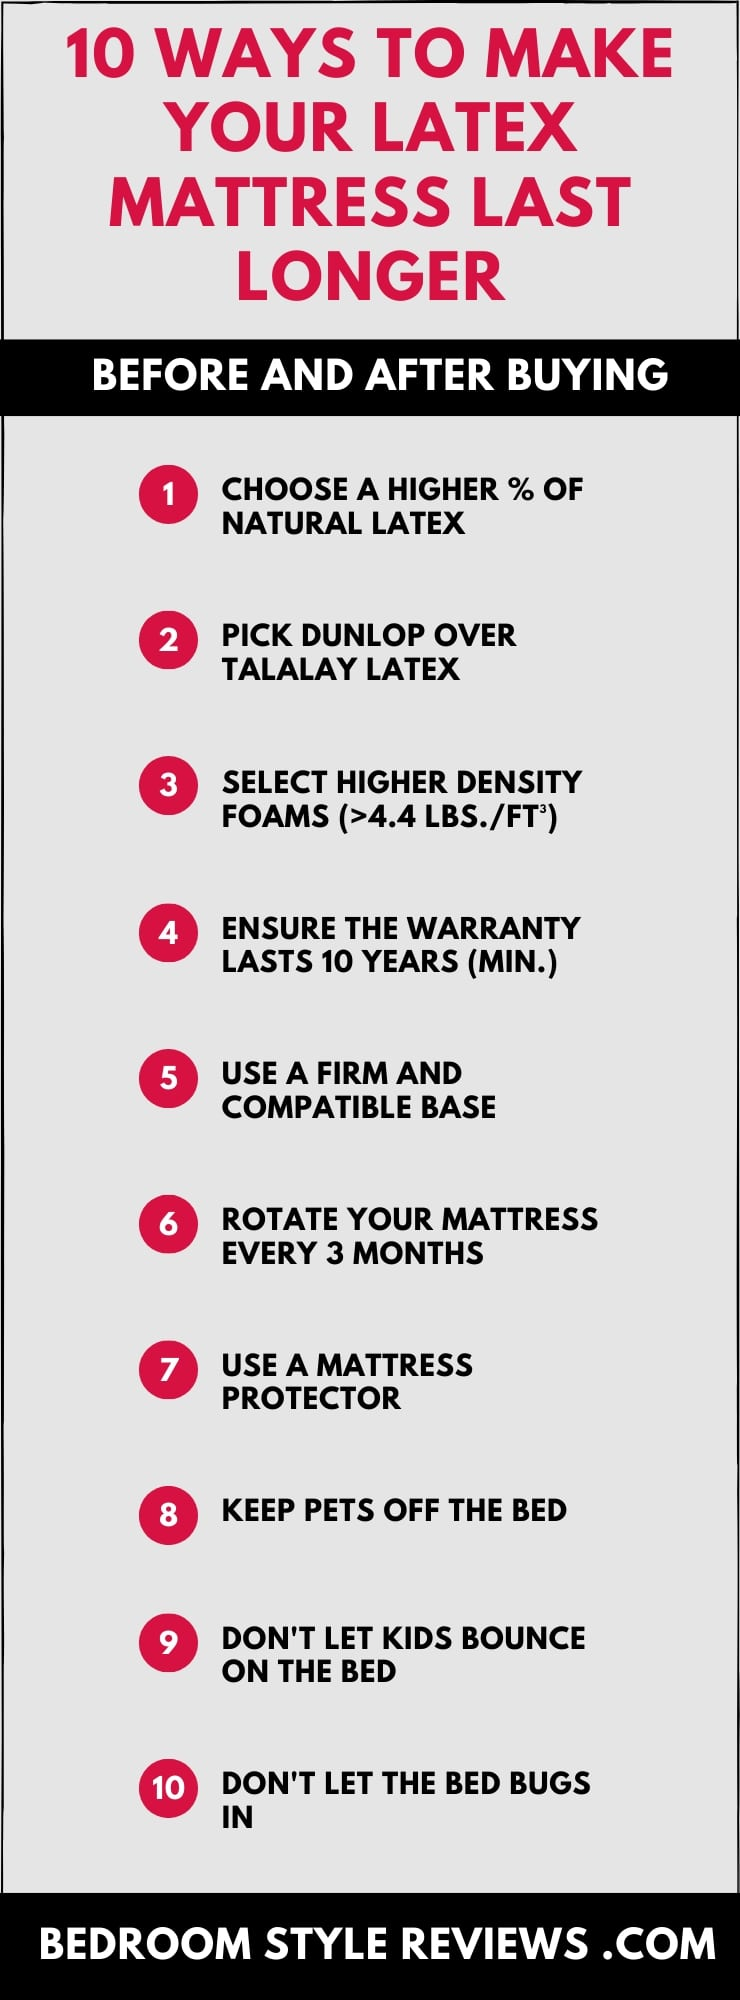 10 Ways to Make Your Latex Mattress Last Longer - Custom Infographic